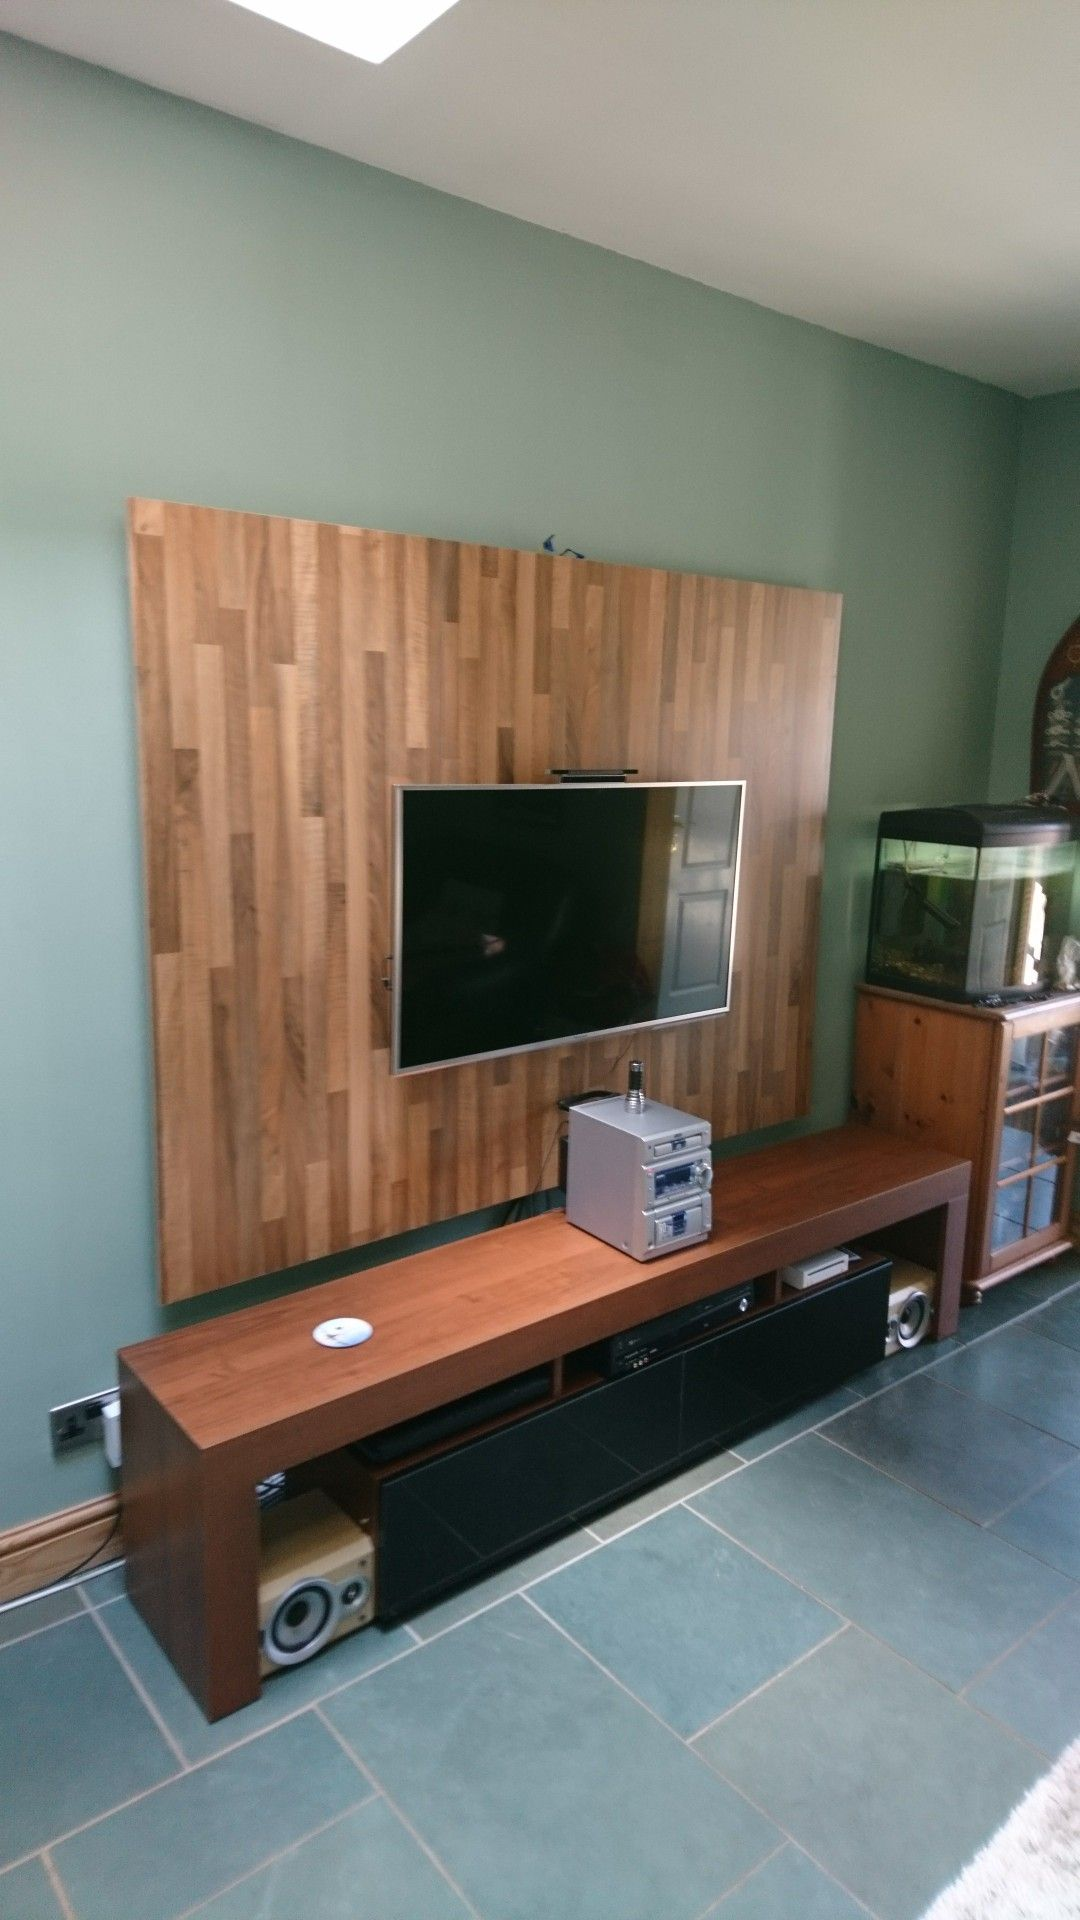 Cinewall Tv Paneel Our New Light Walnut Tv Back Panel Hooks On And Off The Wall With